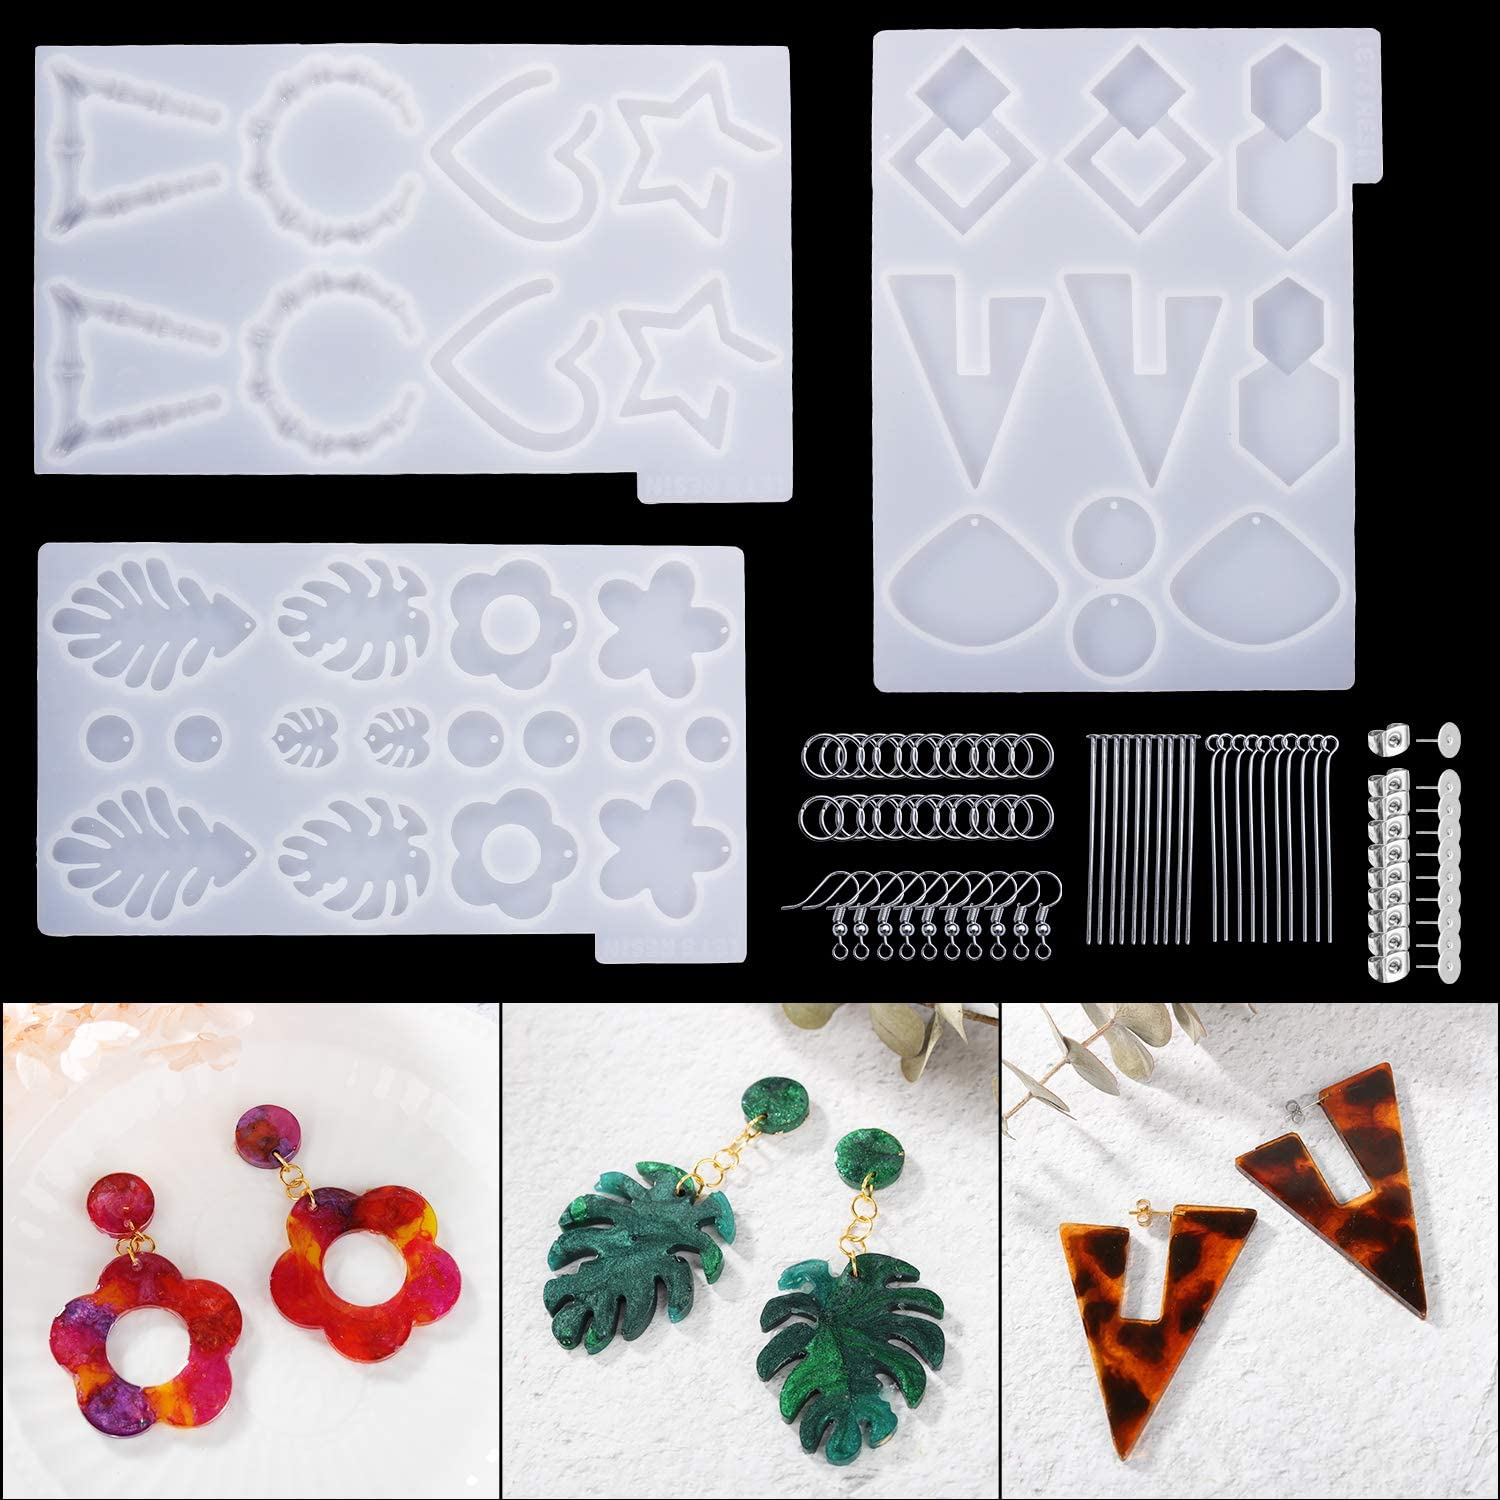 Resin Casting Mold Kit for Jewellery Making DIY Craft Silicone Moulds Epoxy Earring Resin Molds Gifts for Women Girls Pack of 8 Include Earring Hooks, Jump Rings,Eye Pins